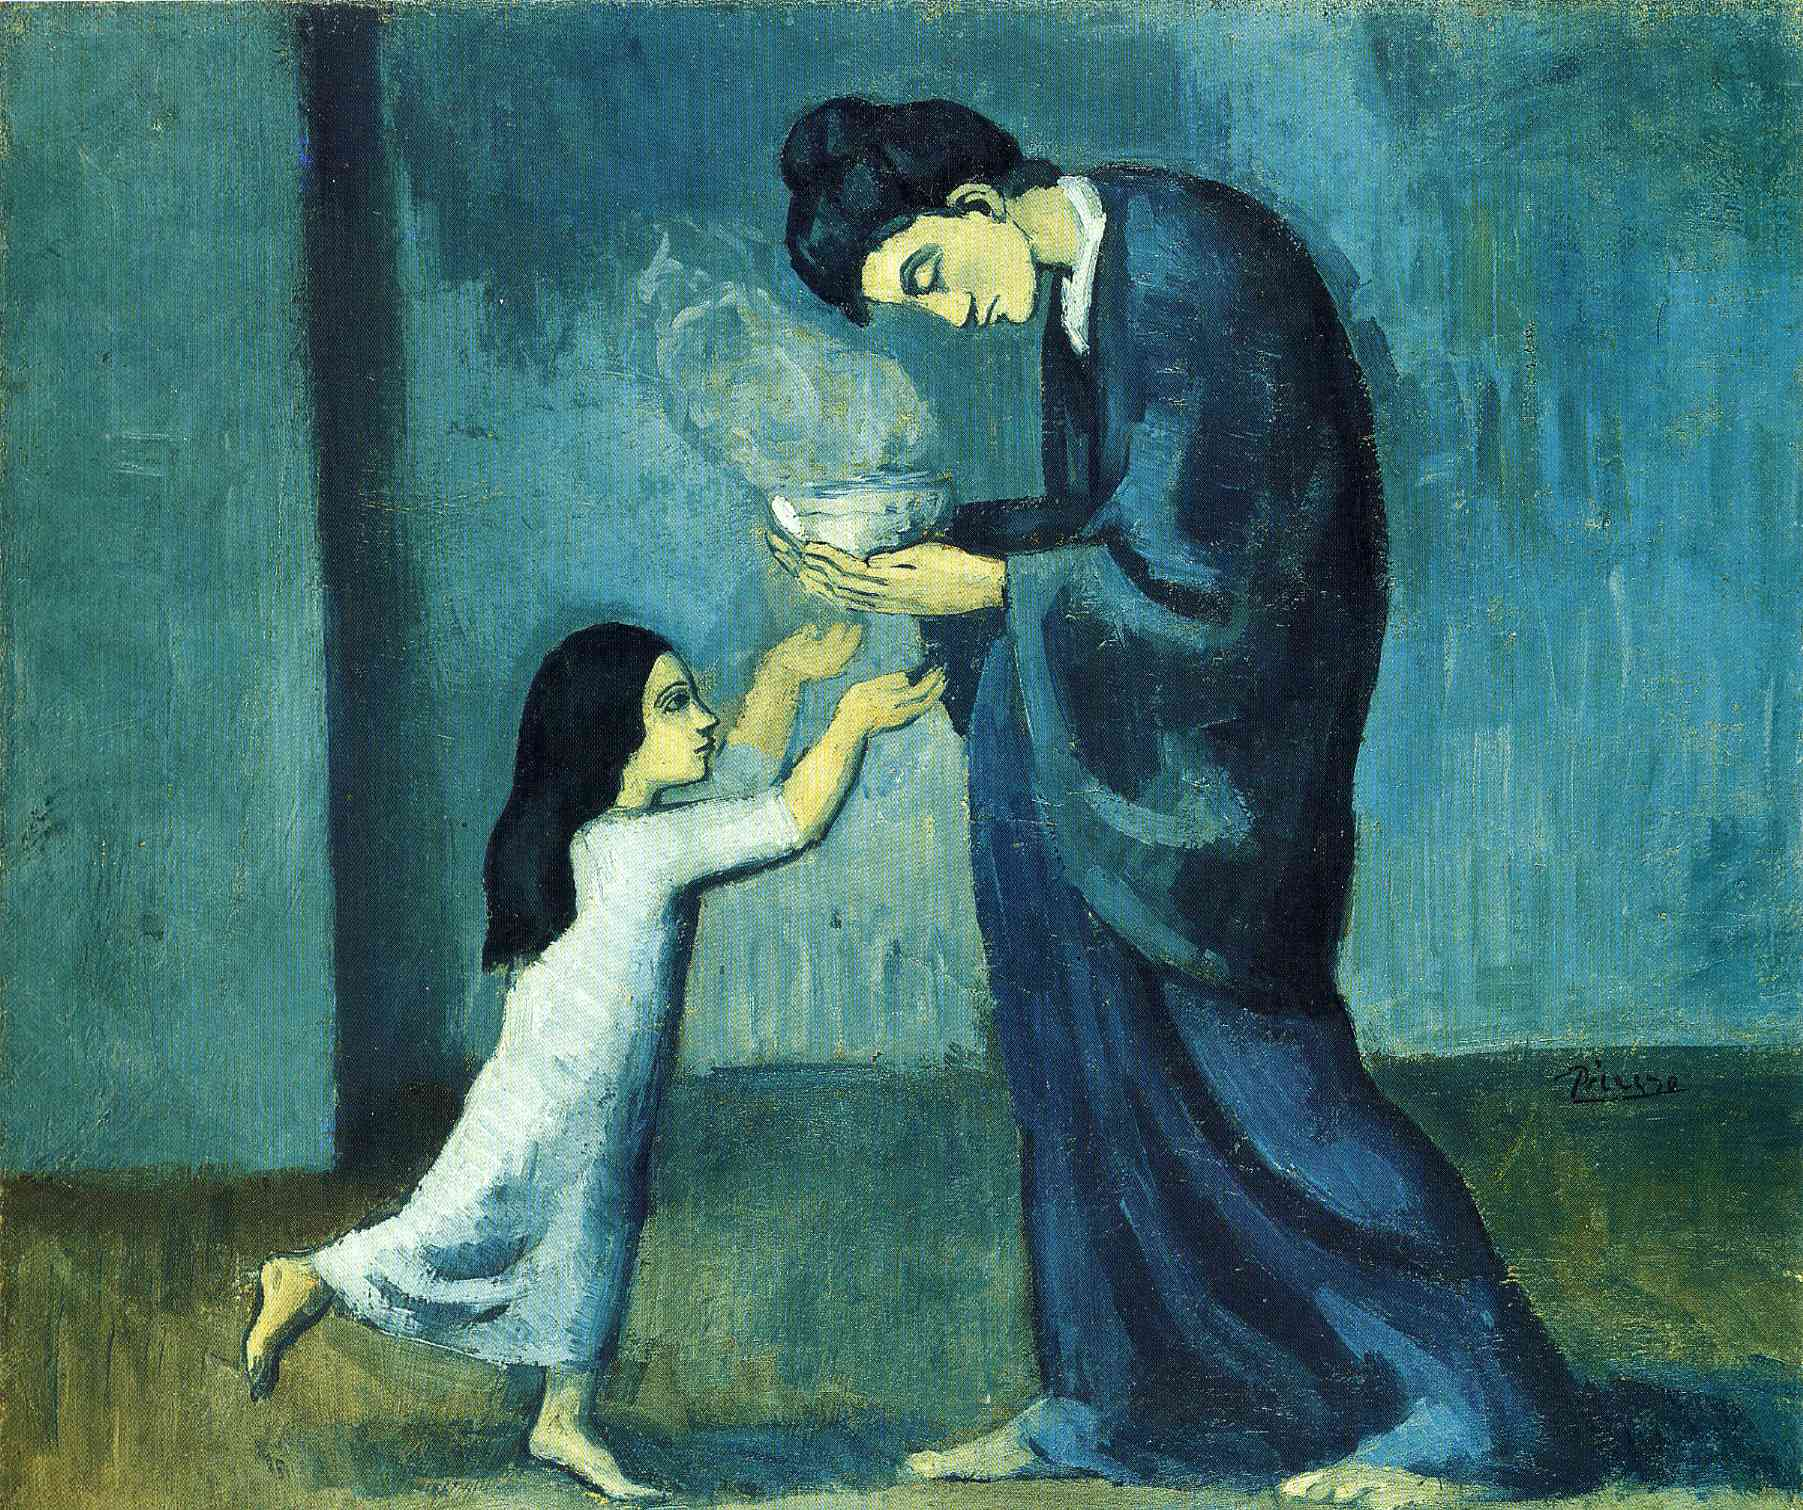 Cuadros De Picasso Wikipedia File Pablo Picasso 1902 03 La Soupe The Soup Oil On